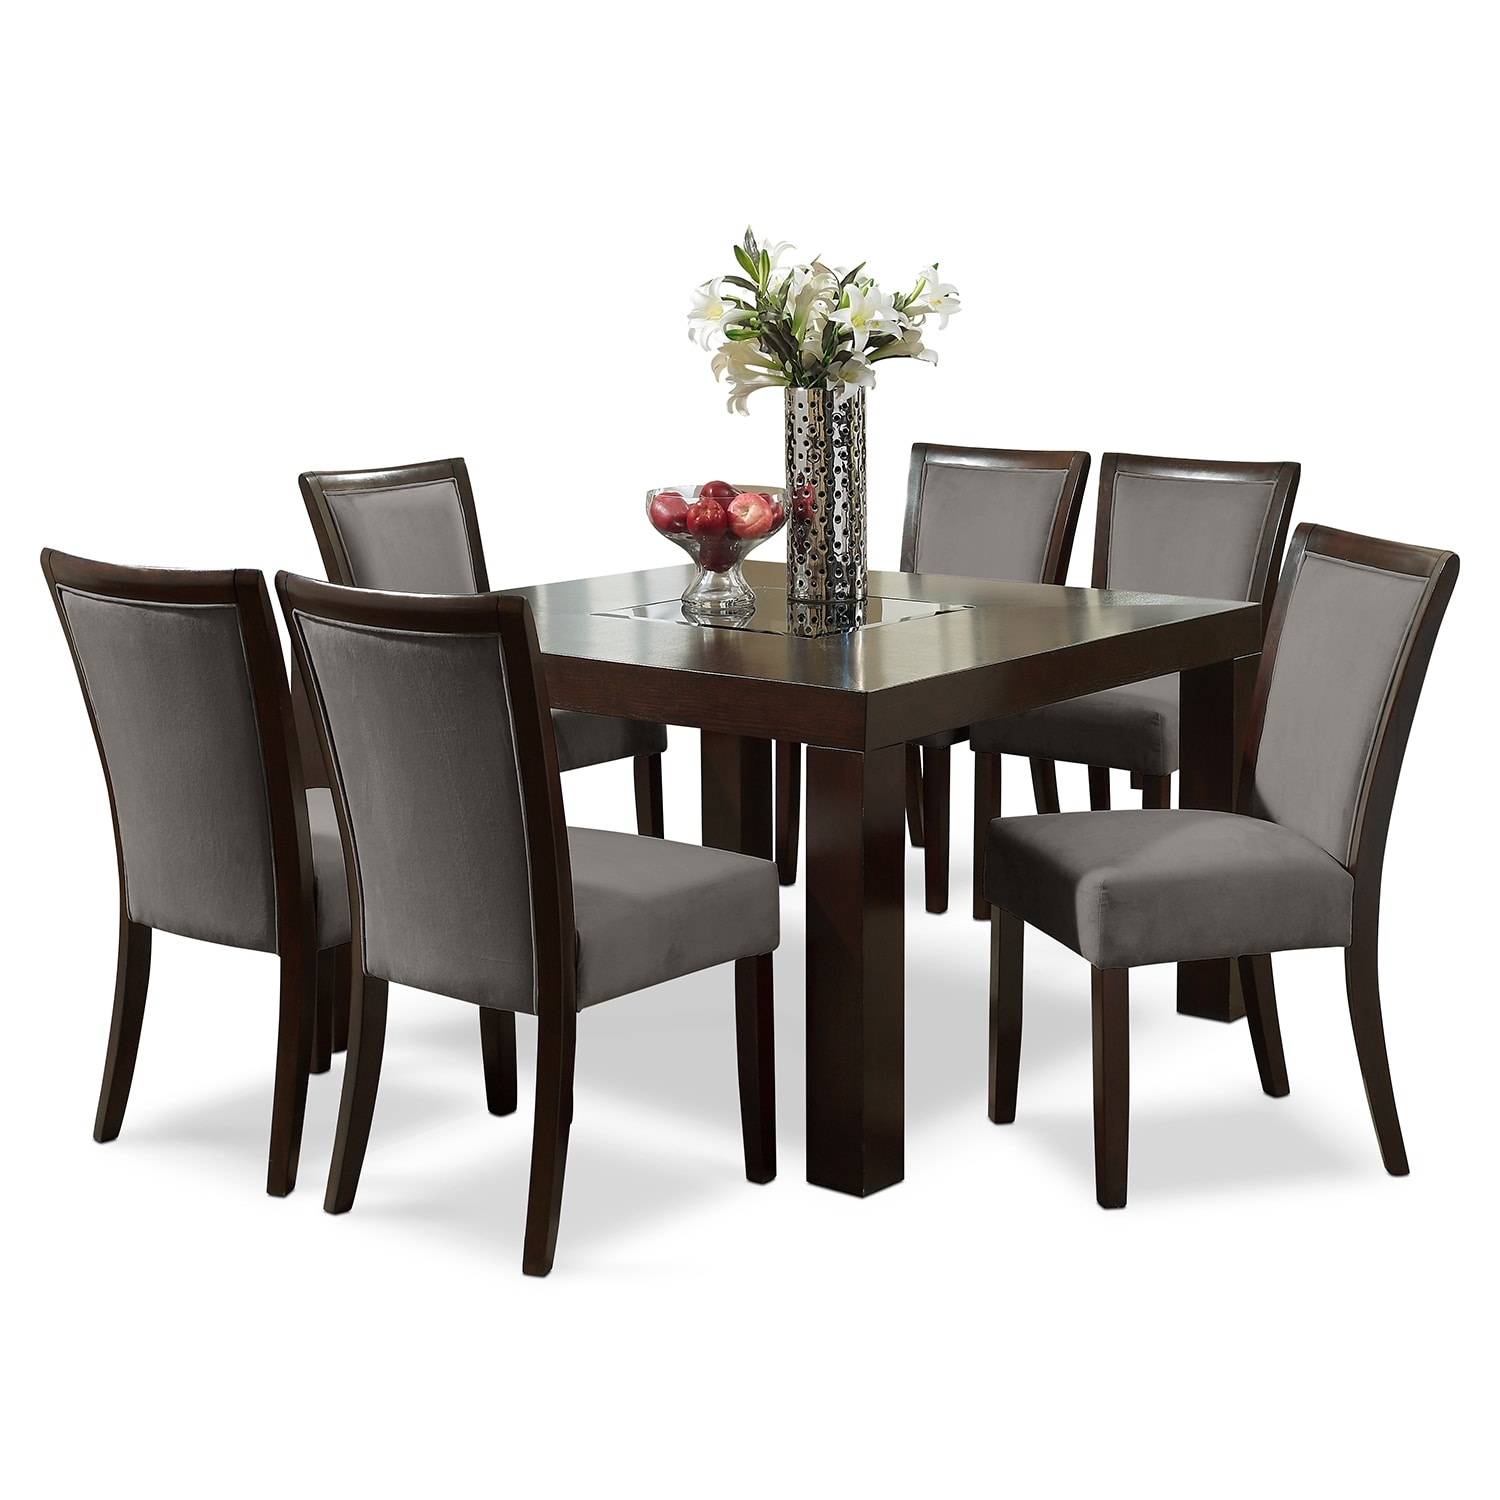 "Tango Gray 7 Pc. Dinette (50"" Table)"